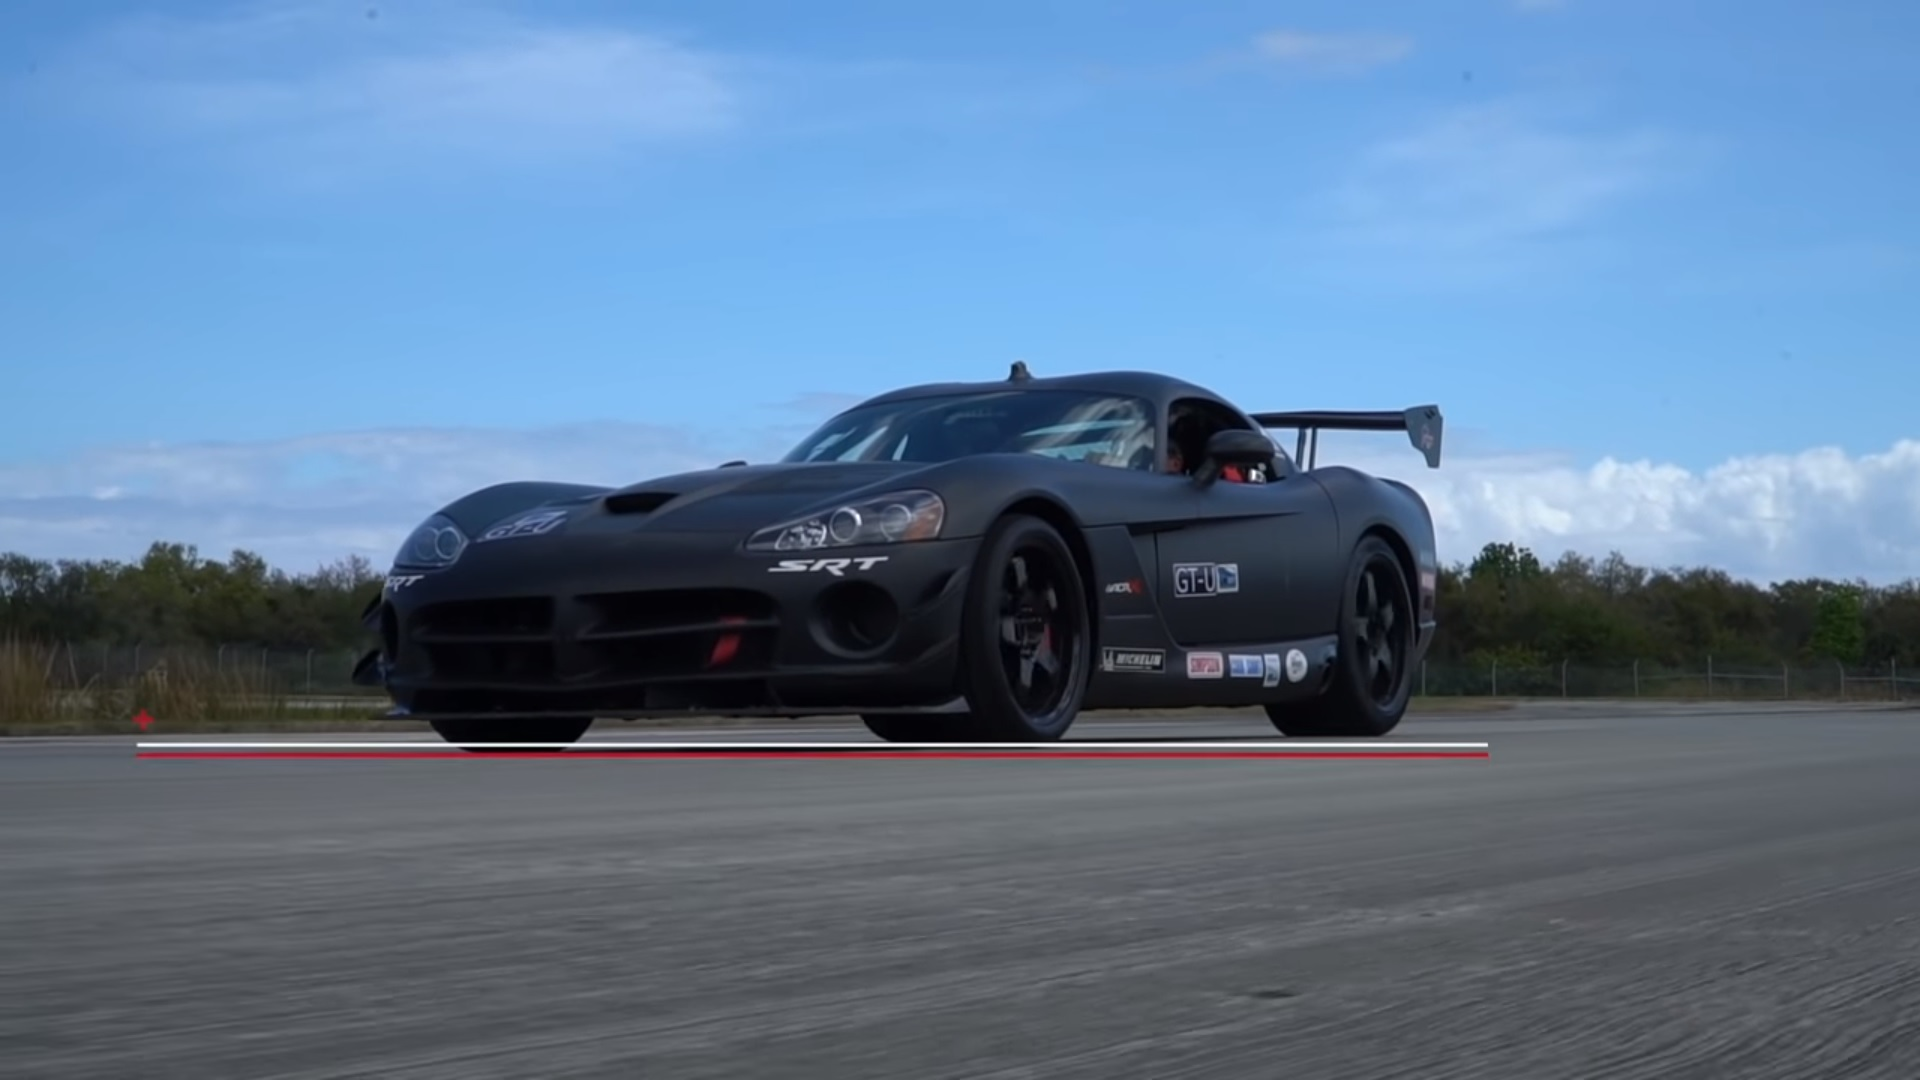 Dodge Viper Acr Race Car Fire Suppression System In Action